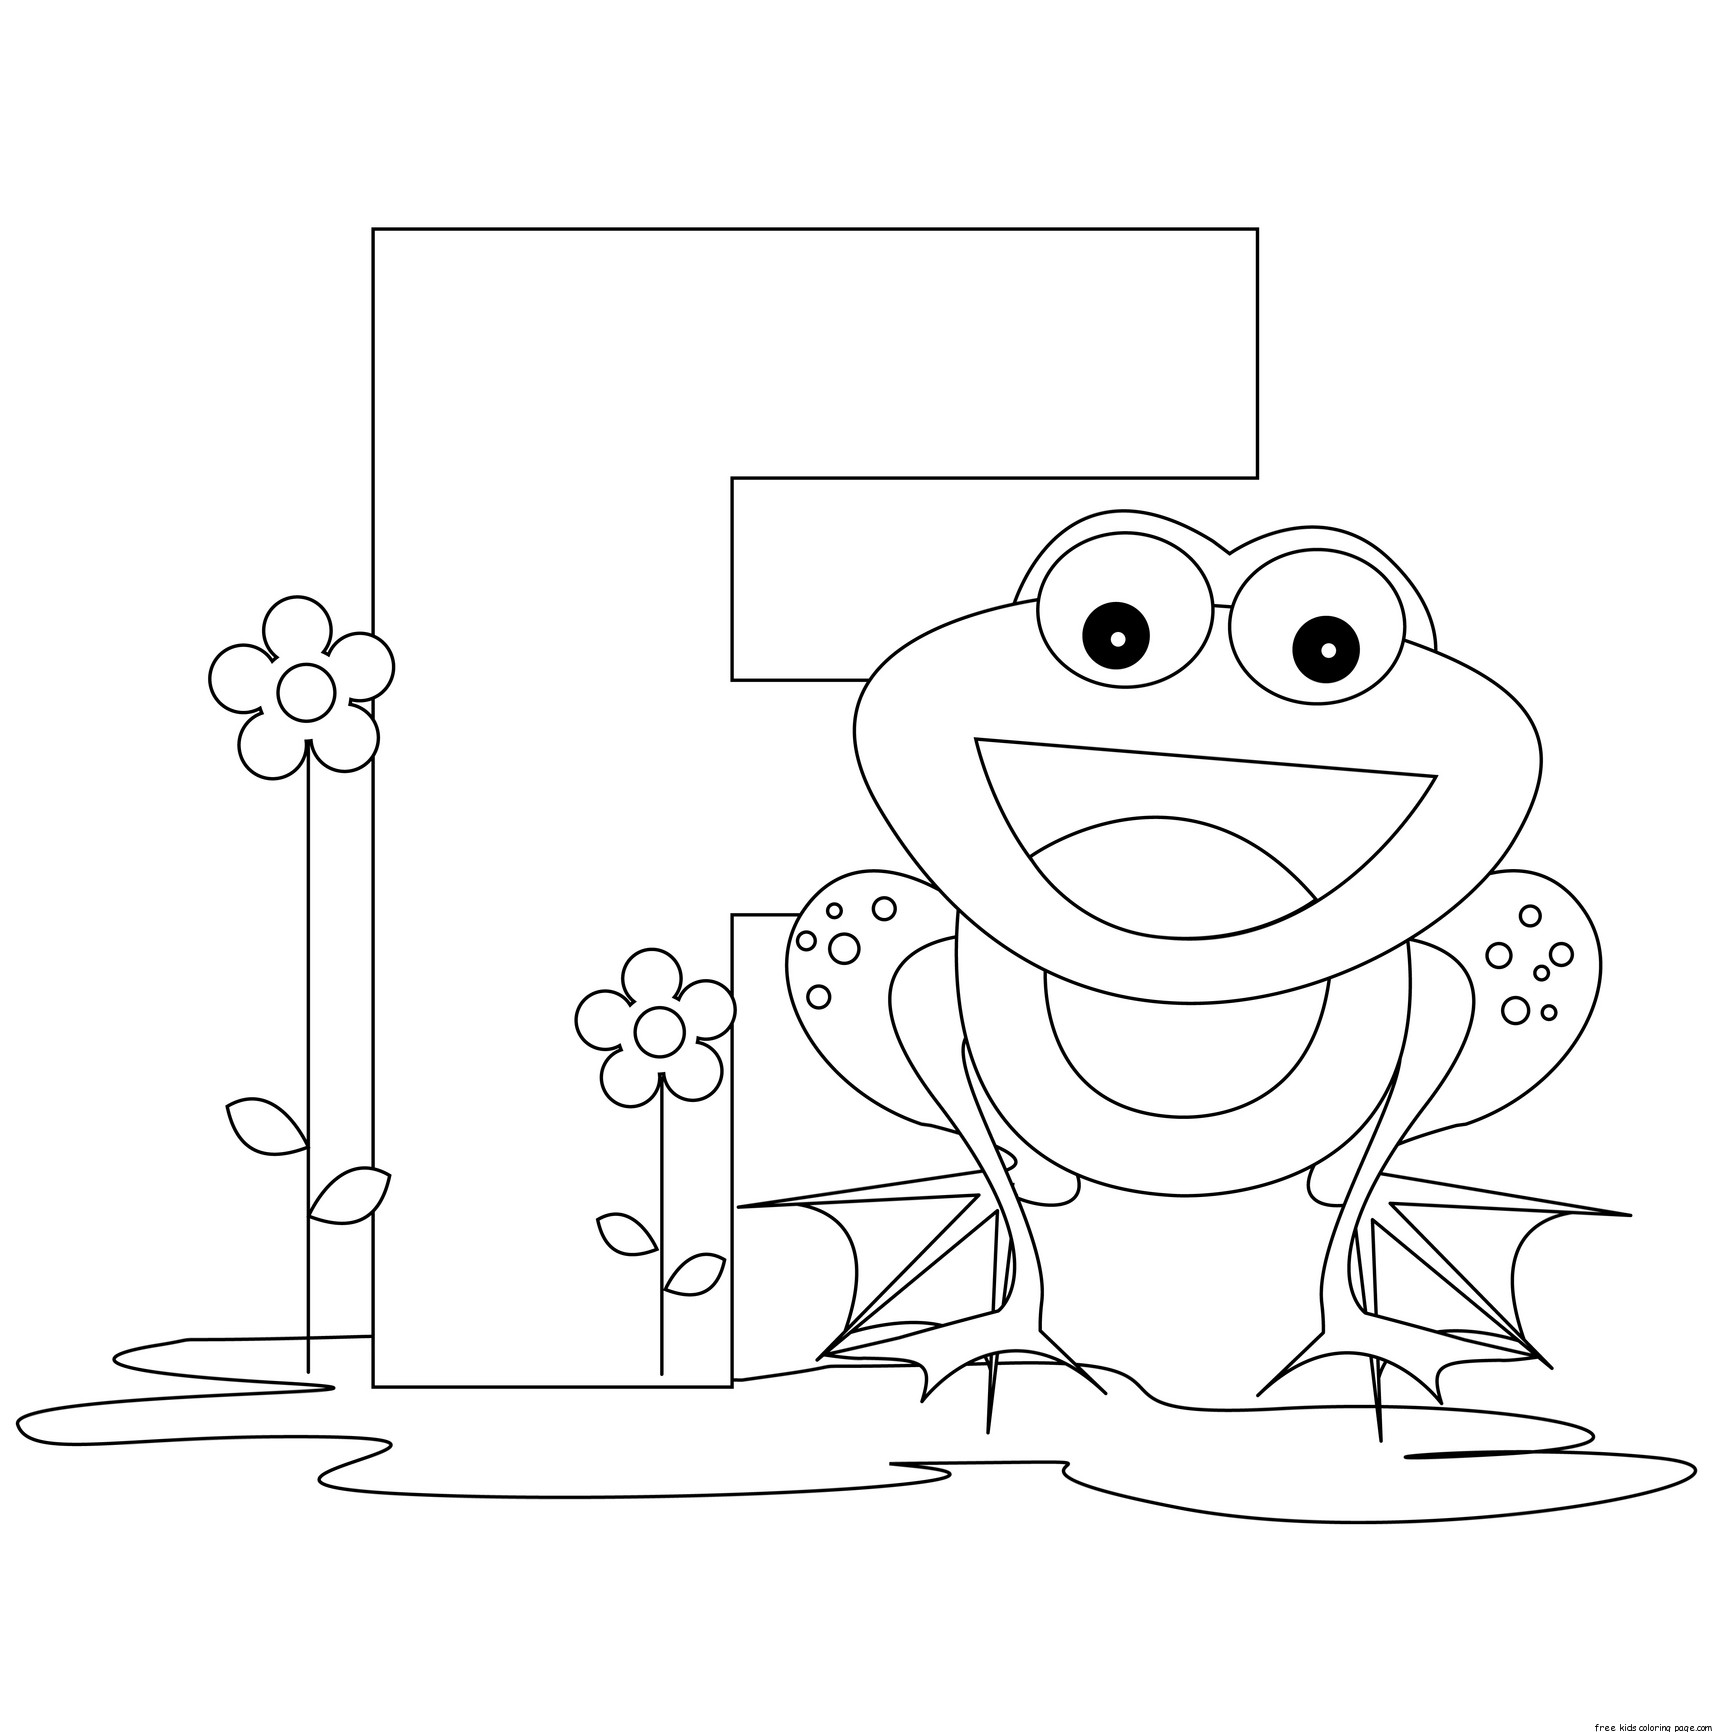 Pritnable alphabet letter f preschool activities for Abc coloring pages for kids printable